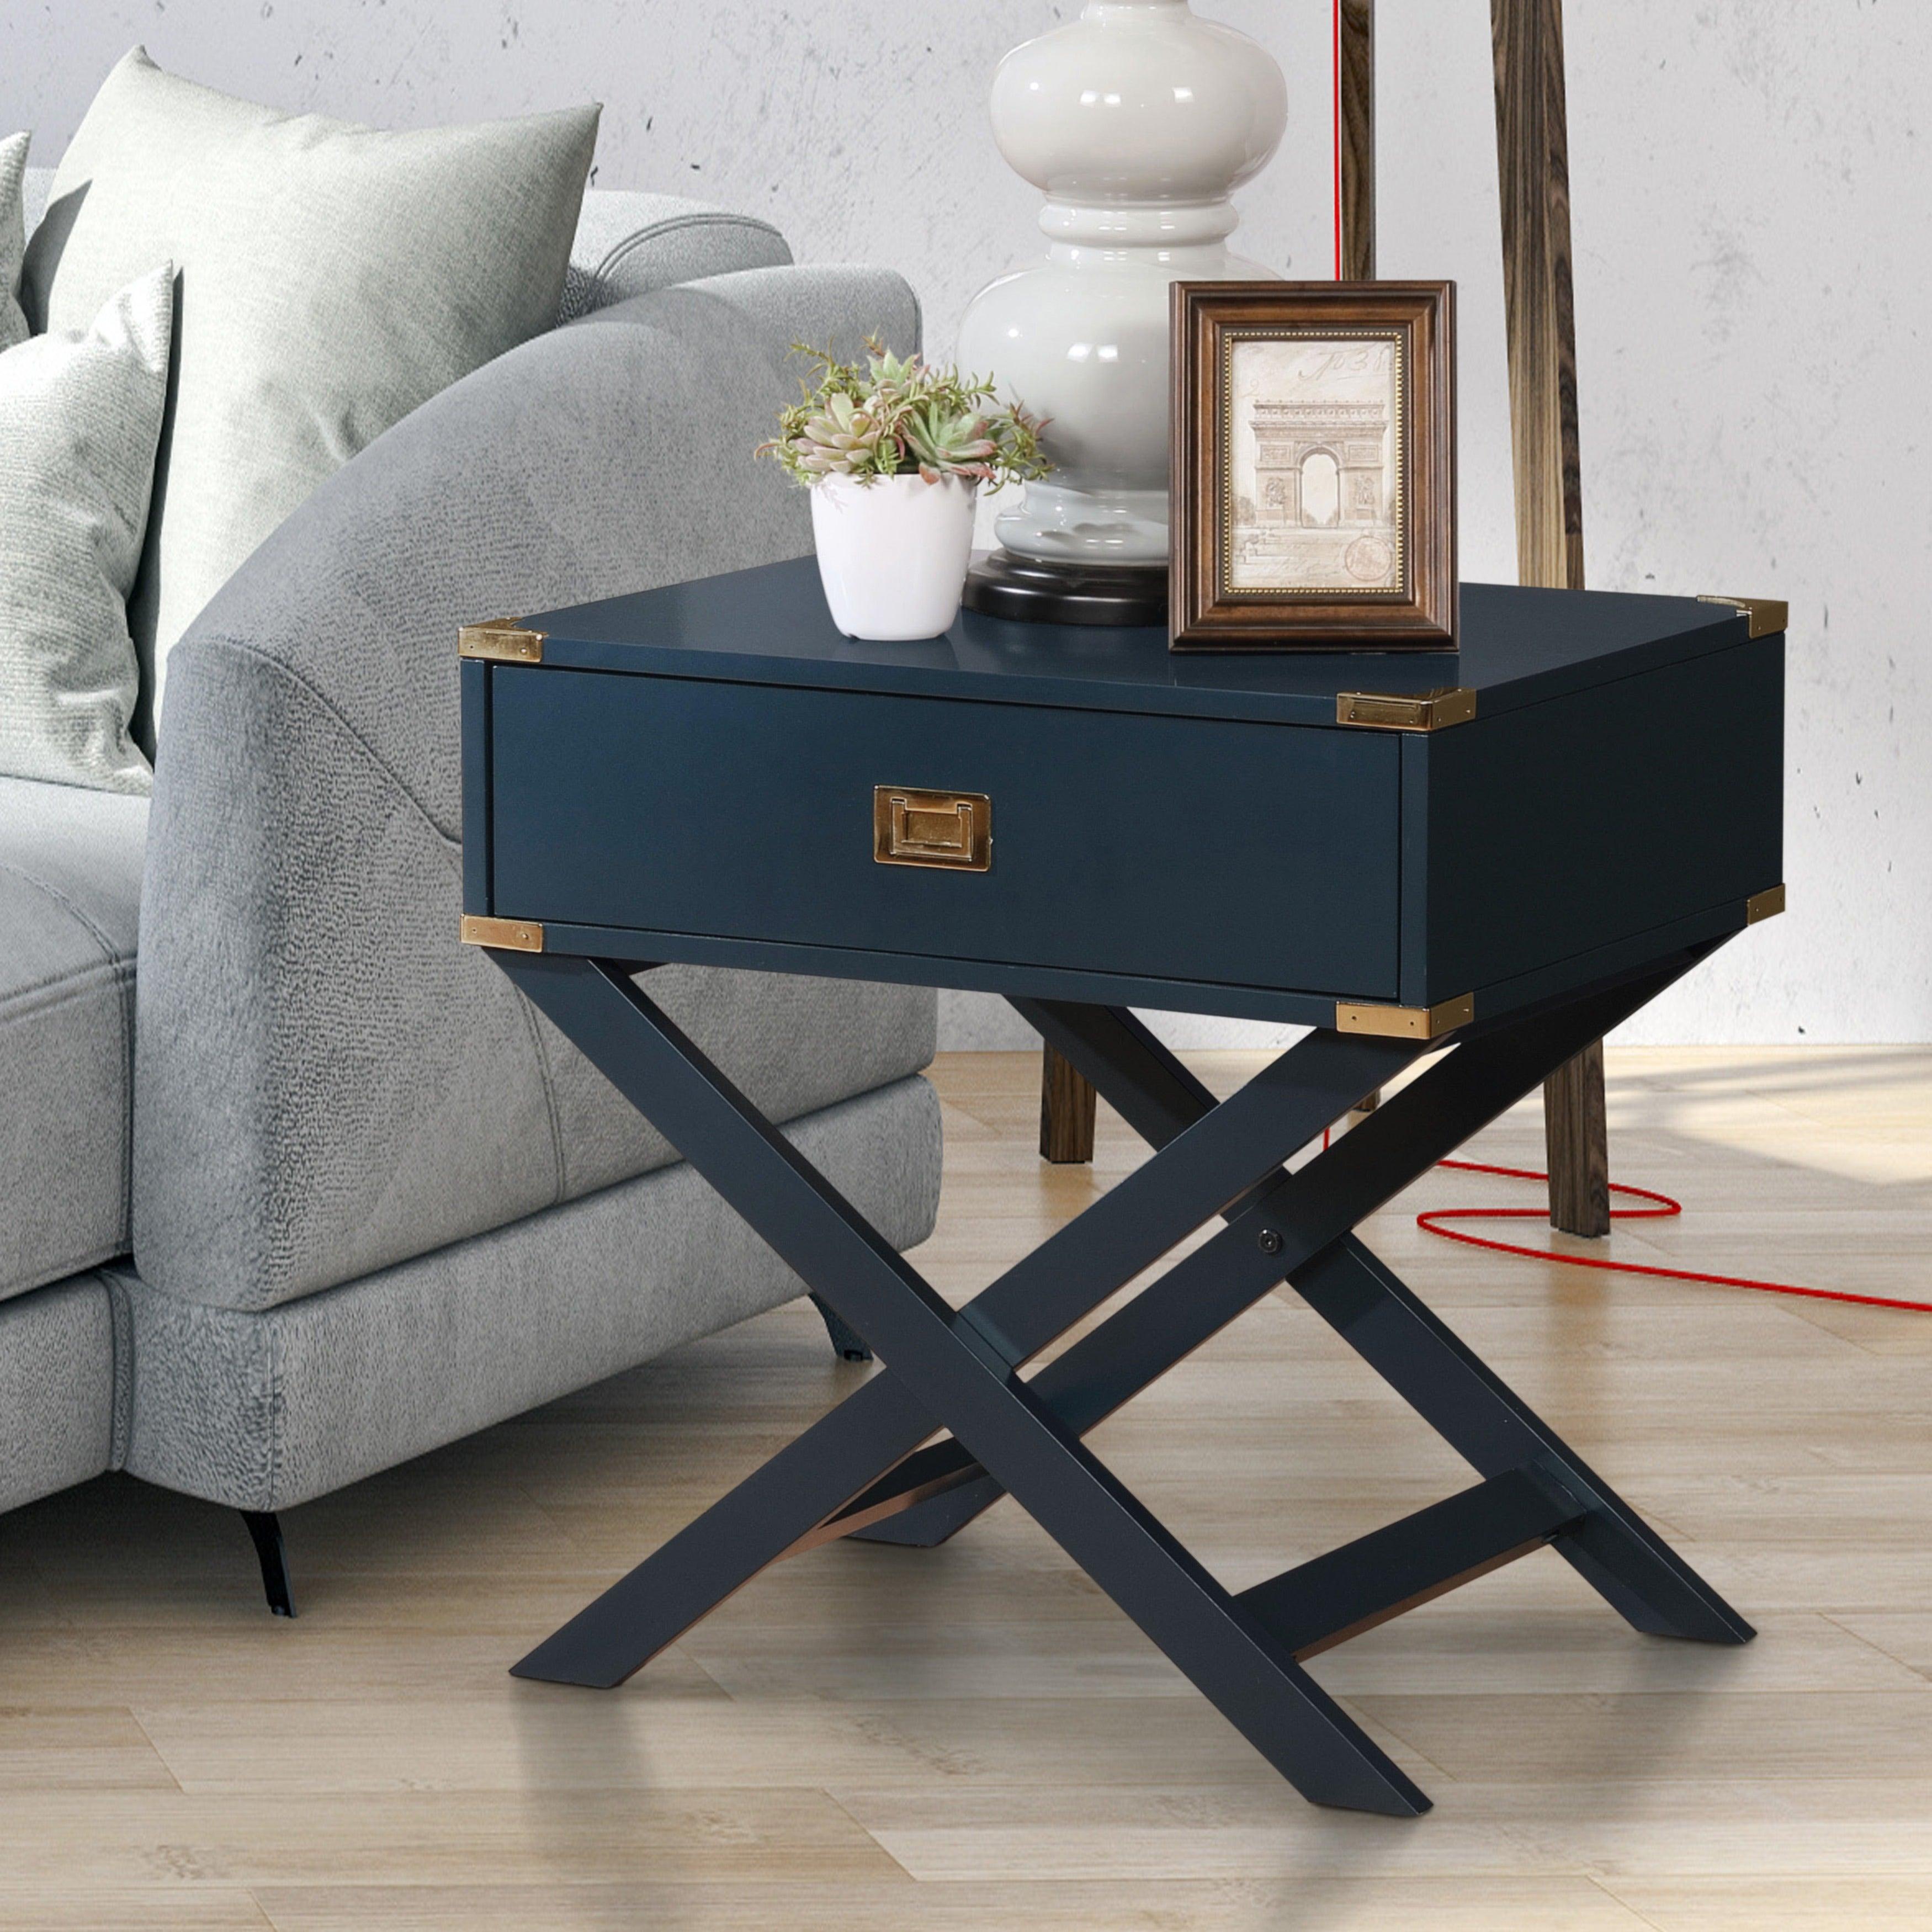 Furniture Of America Maysa Contemporary Single Drawer End Table   Free  Shipping Today   Overstock.com   24258173